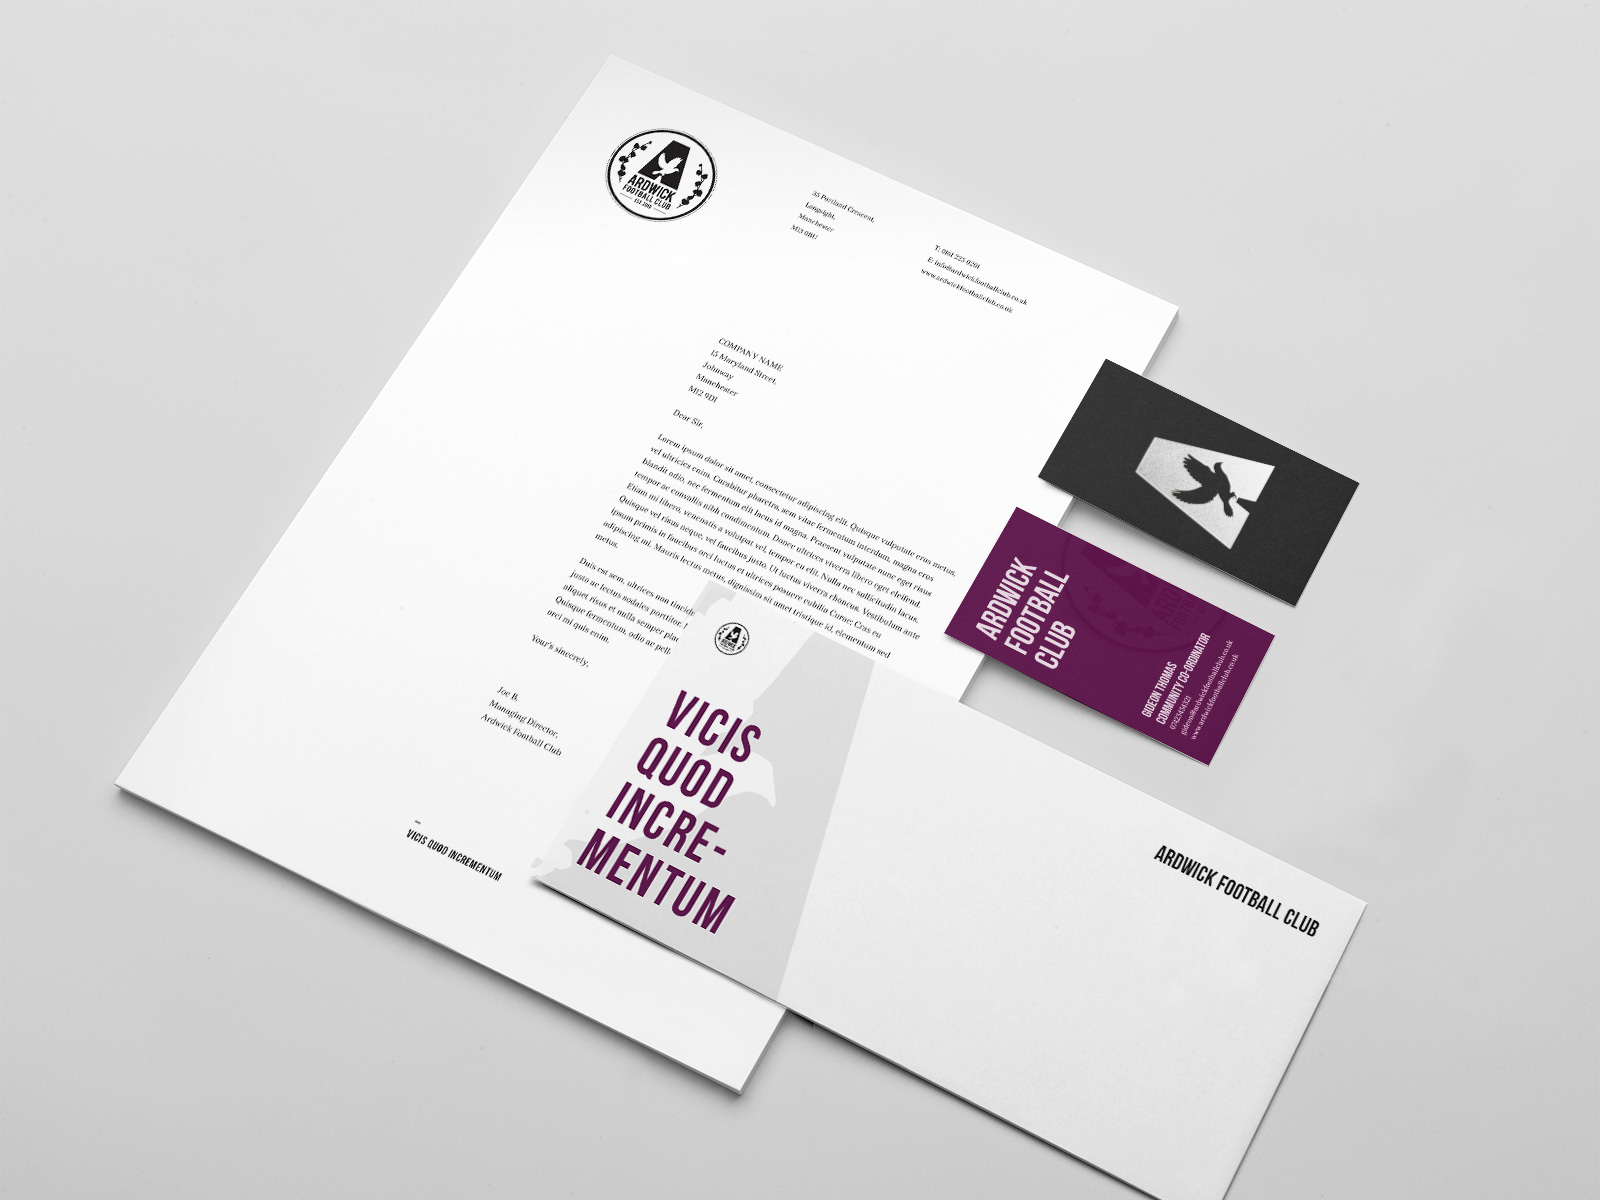 Football club stationary design